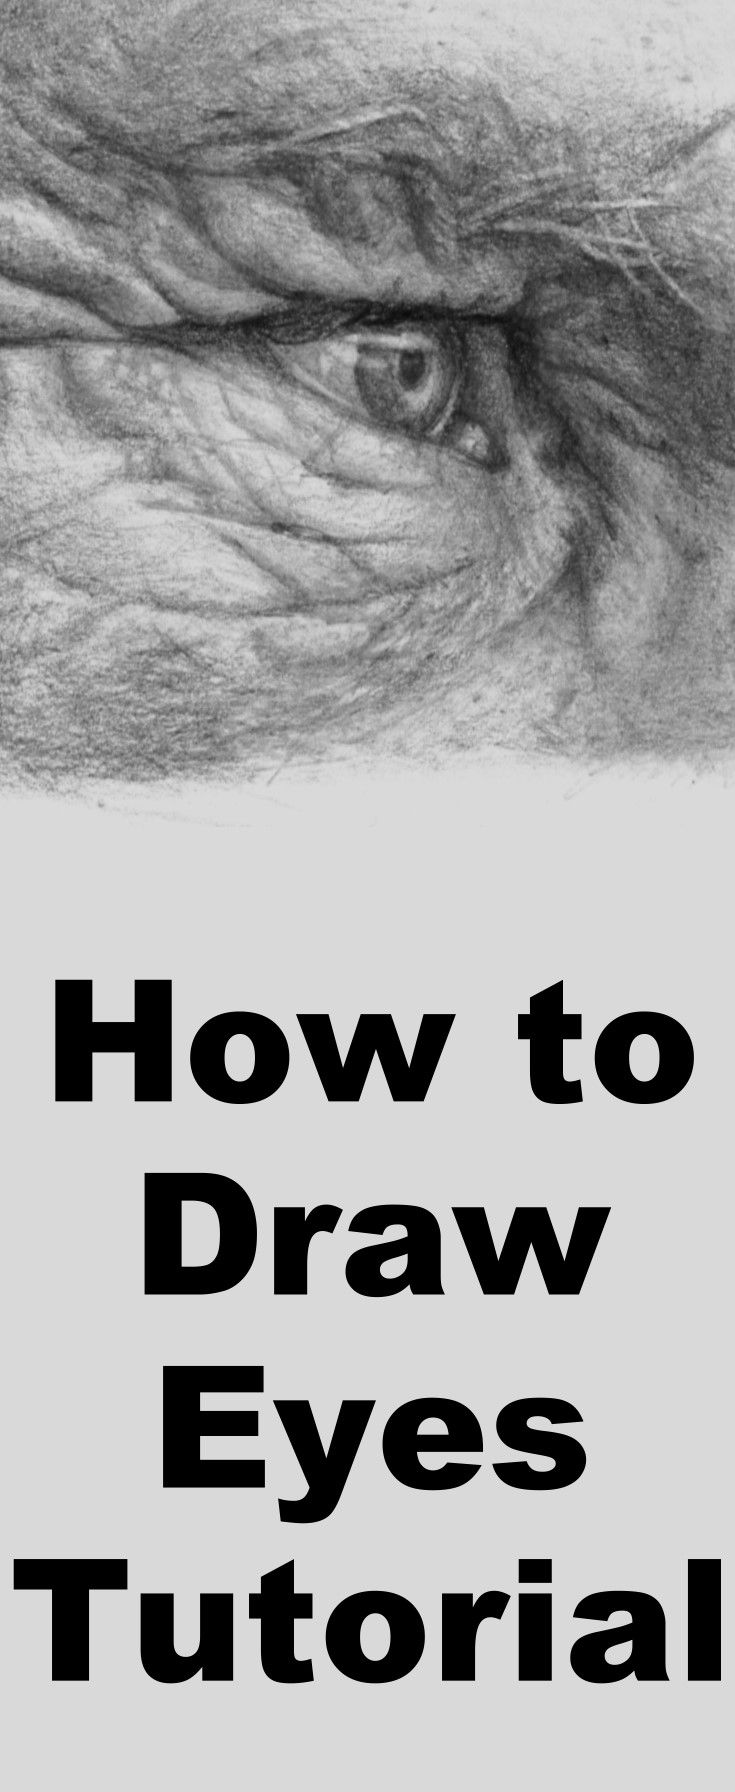 Learn to draw eyes with this pencil drawing lesson